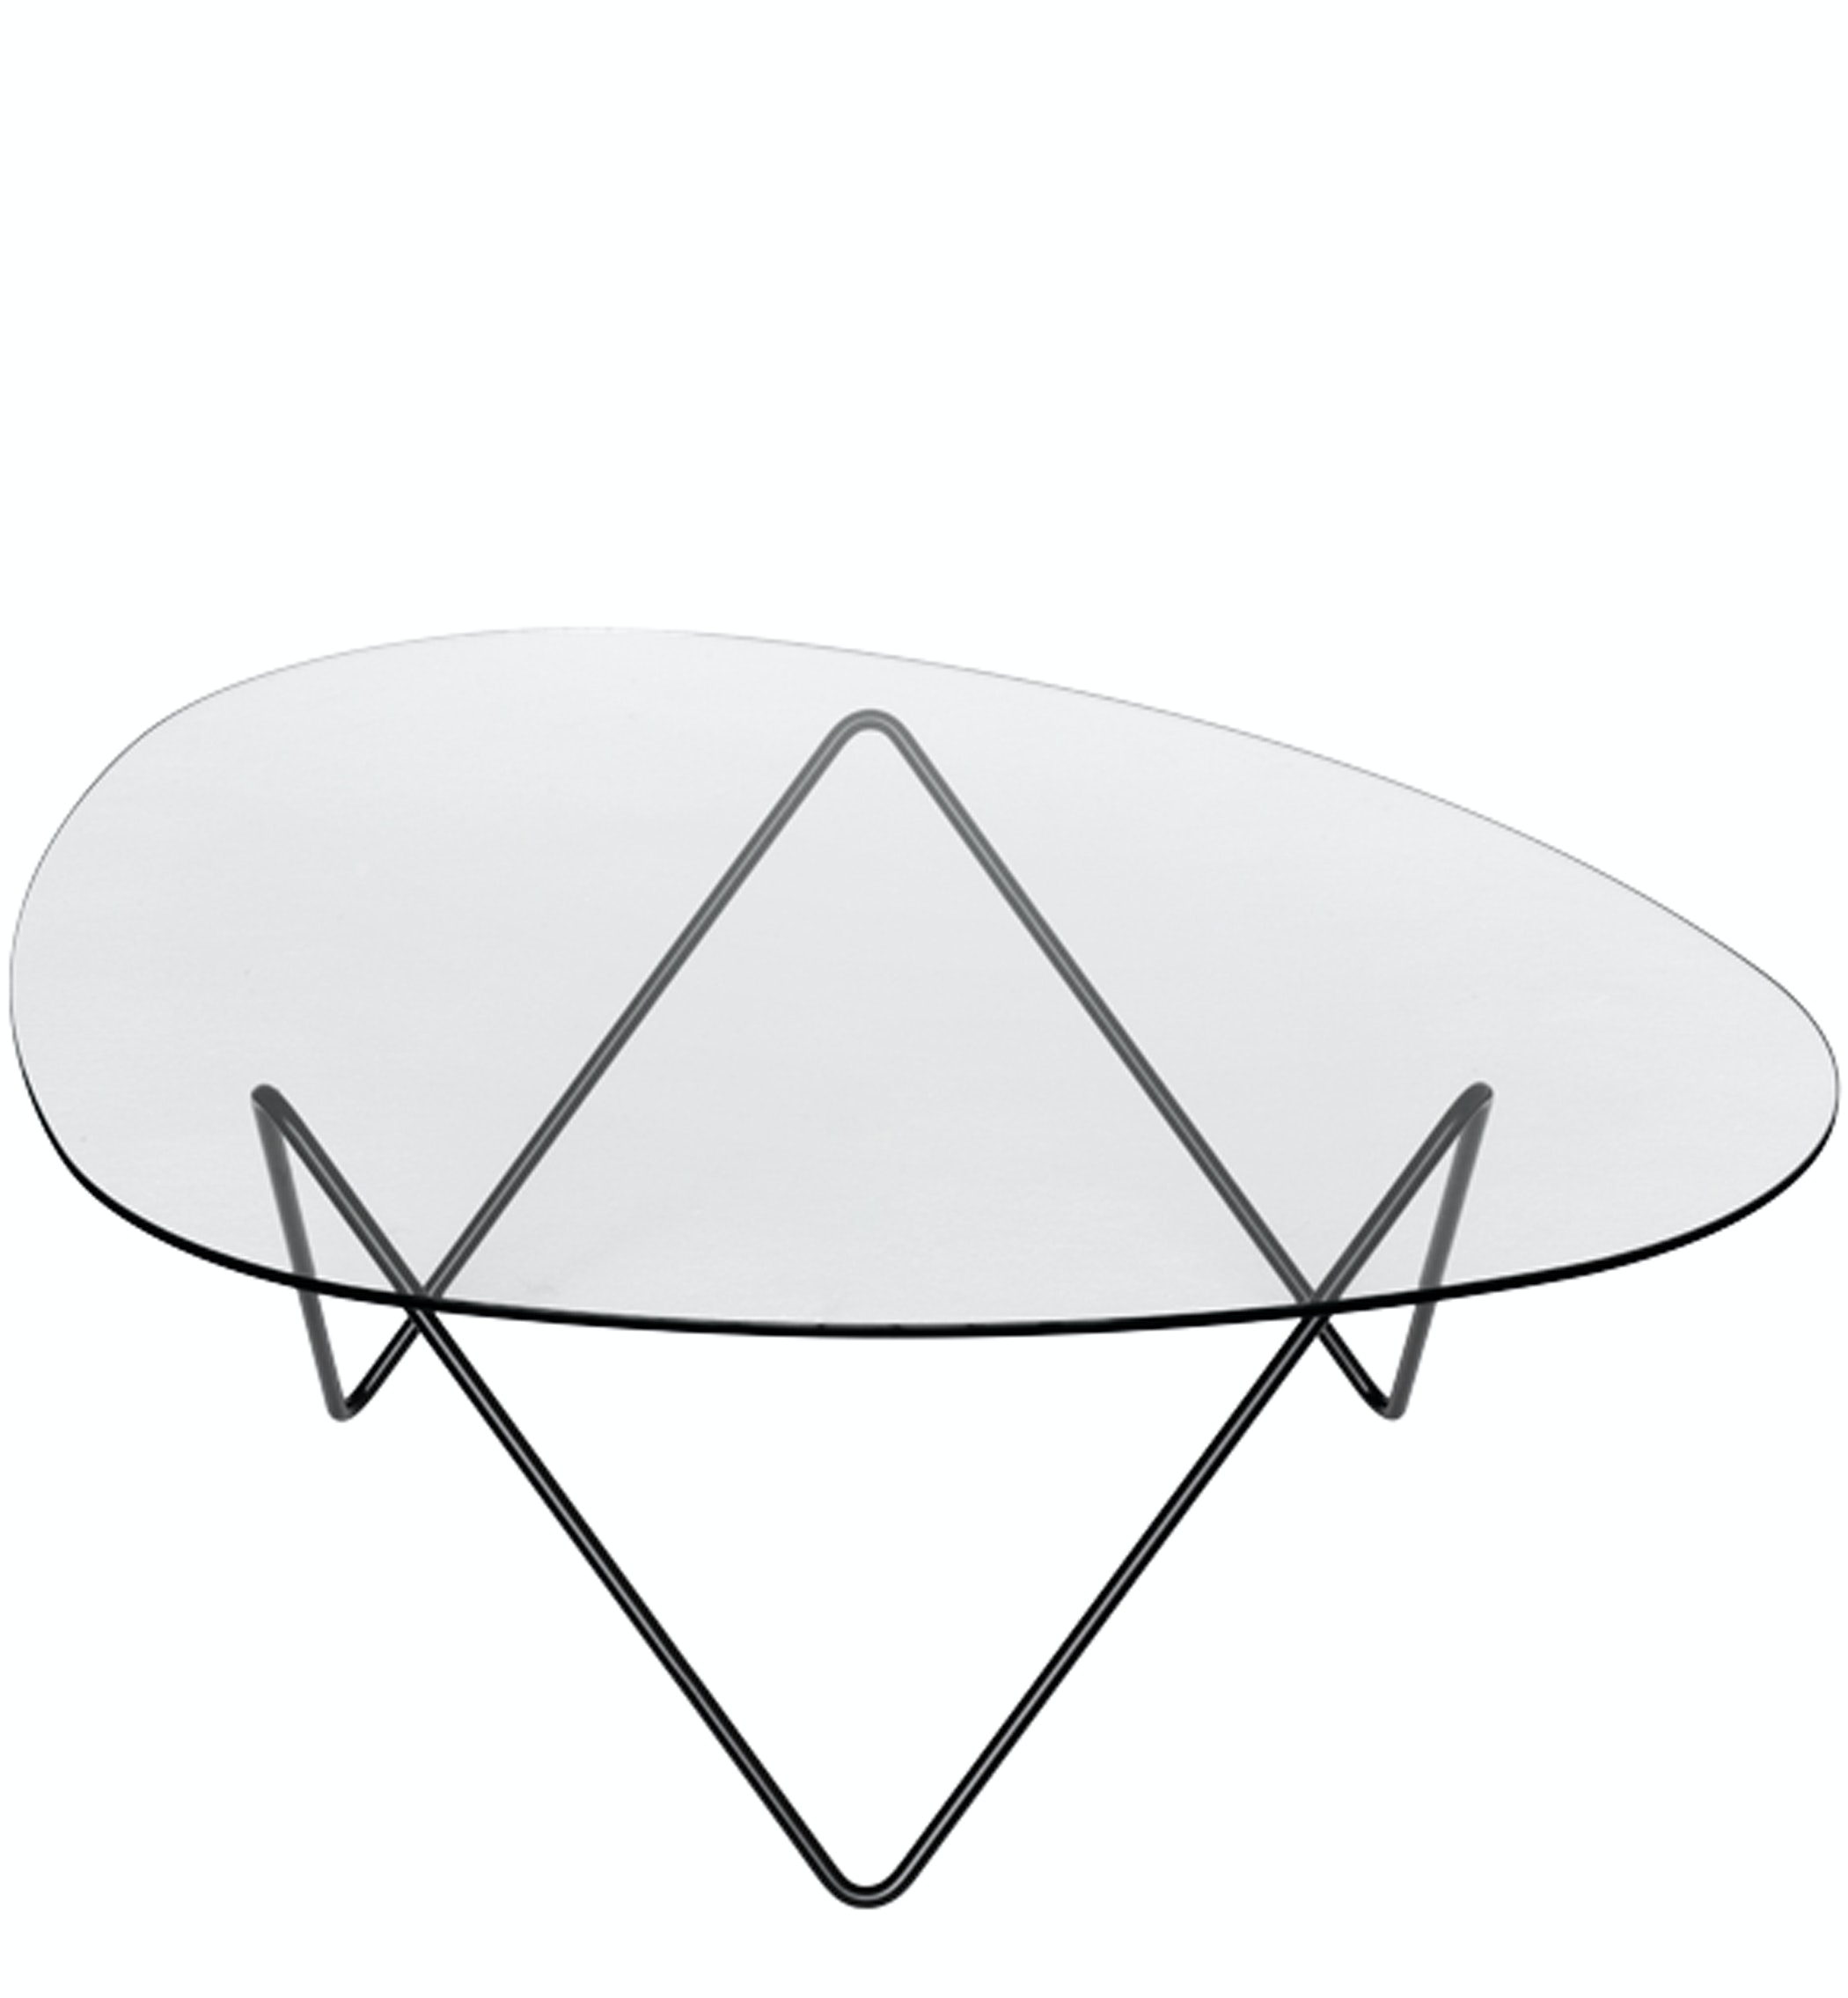 Pedrera Table Product